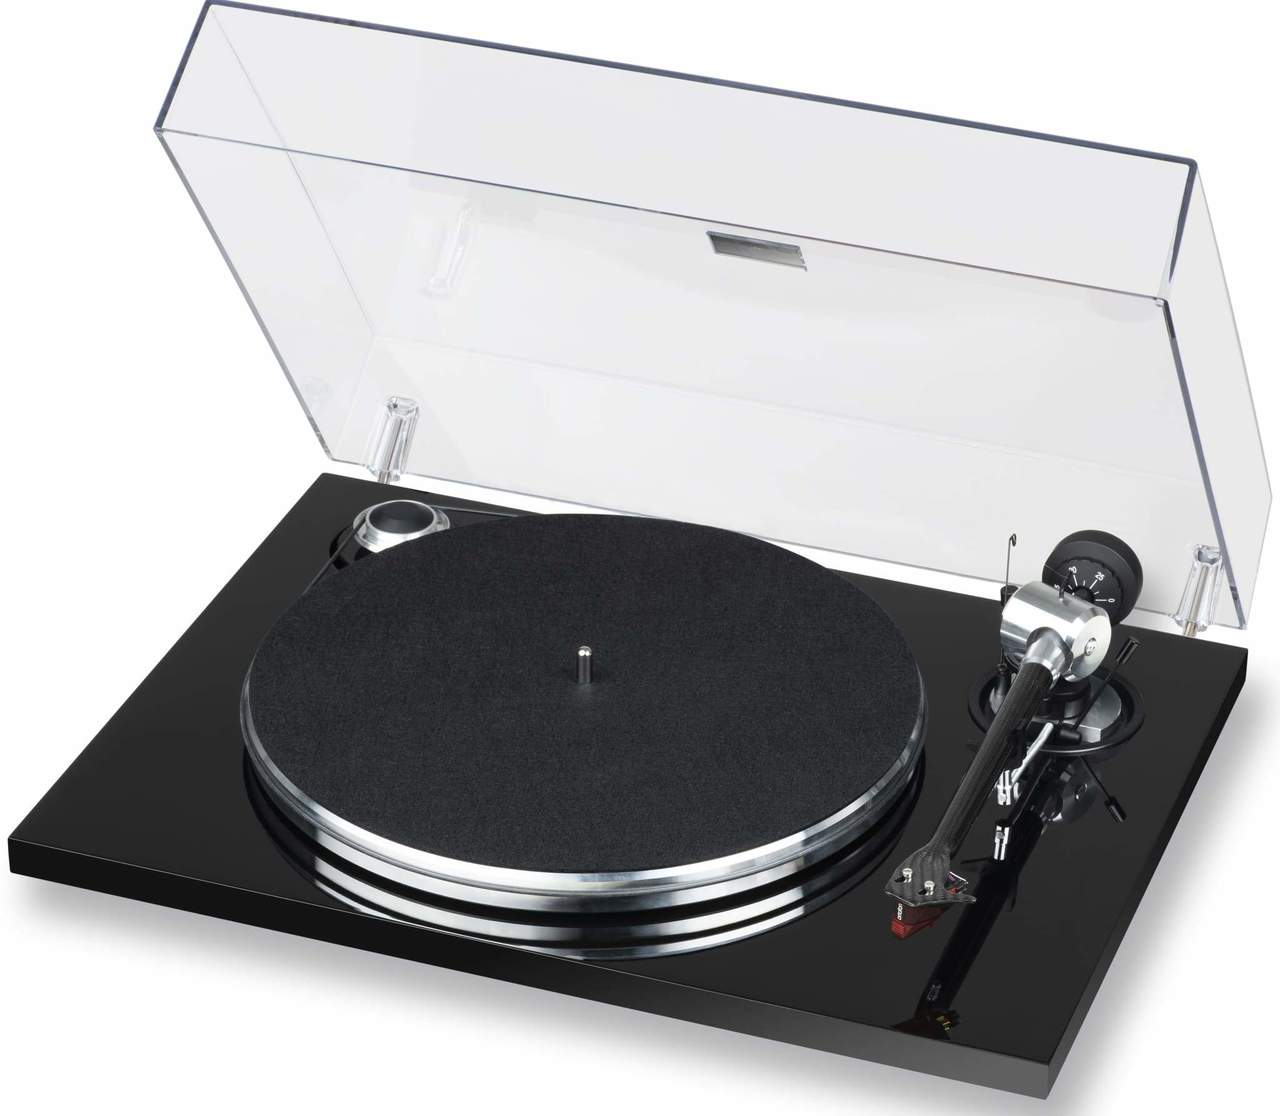 NEW EAT Prelude Turntable at True Audiophile